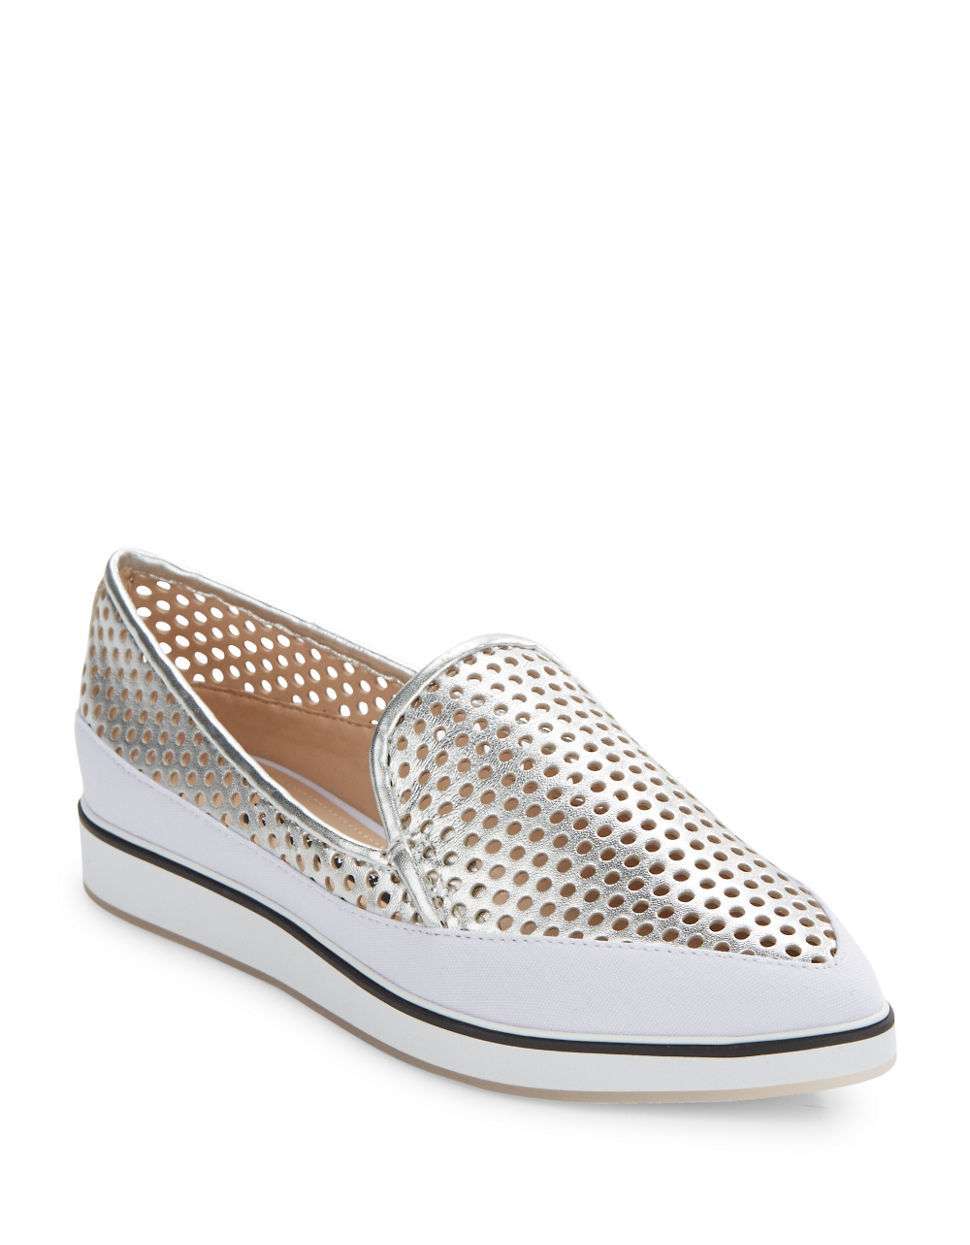 Some days you just don't feel like wearing shoes. These perforated leather, breathable slip-ons by Pikolinos®, with incredibly soft, comfortable Gumlite soles, are made for just such days. The degree handstitched braiding and contrast colors make them just plain fun to wear. In tan. Leather upper, composite sole. Imported.